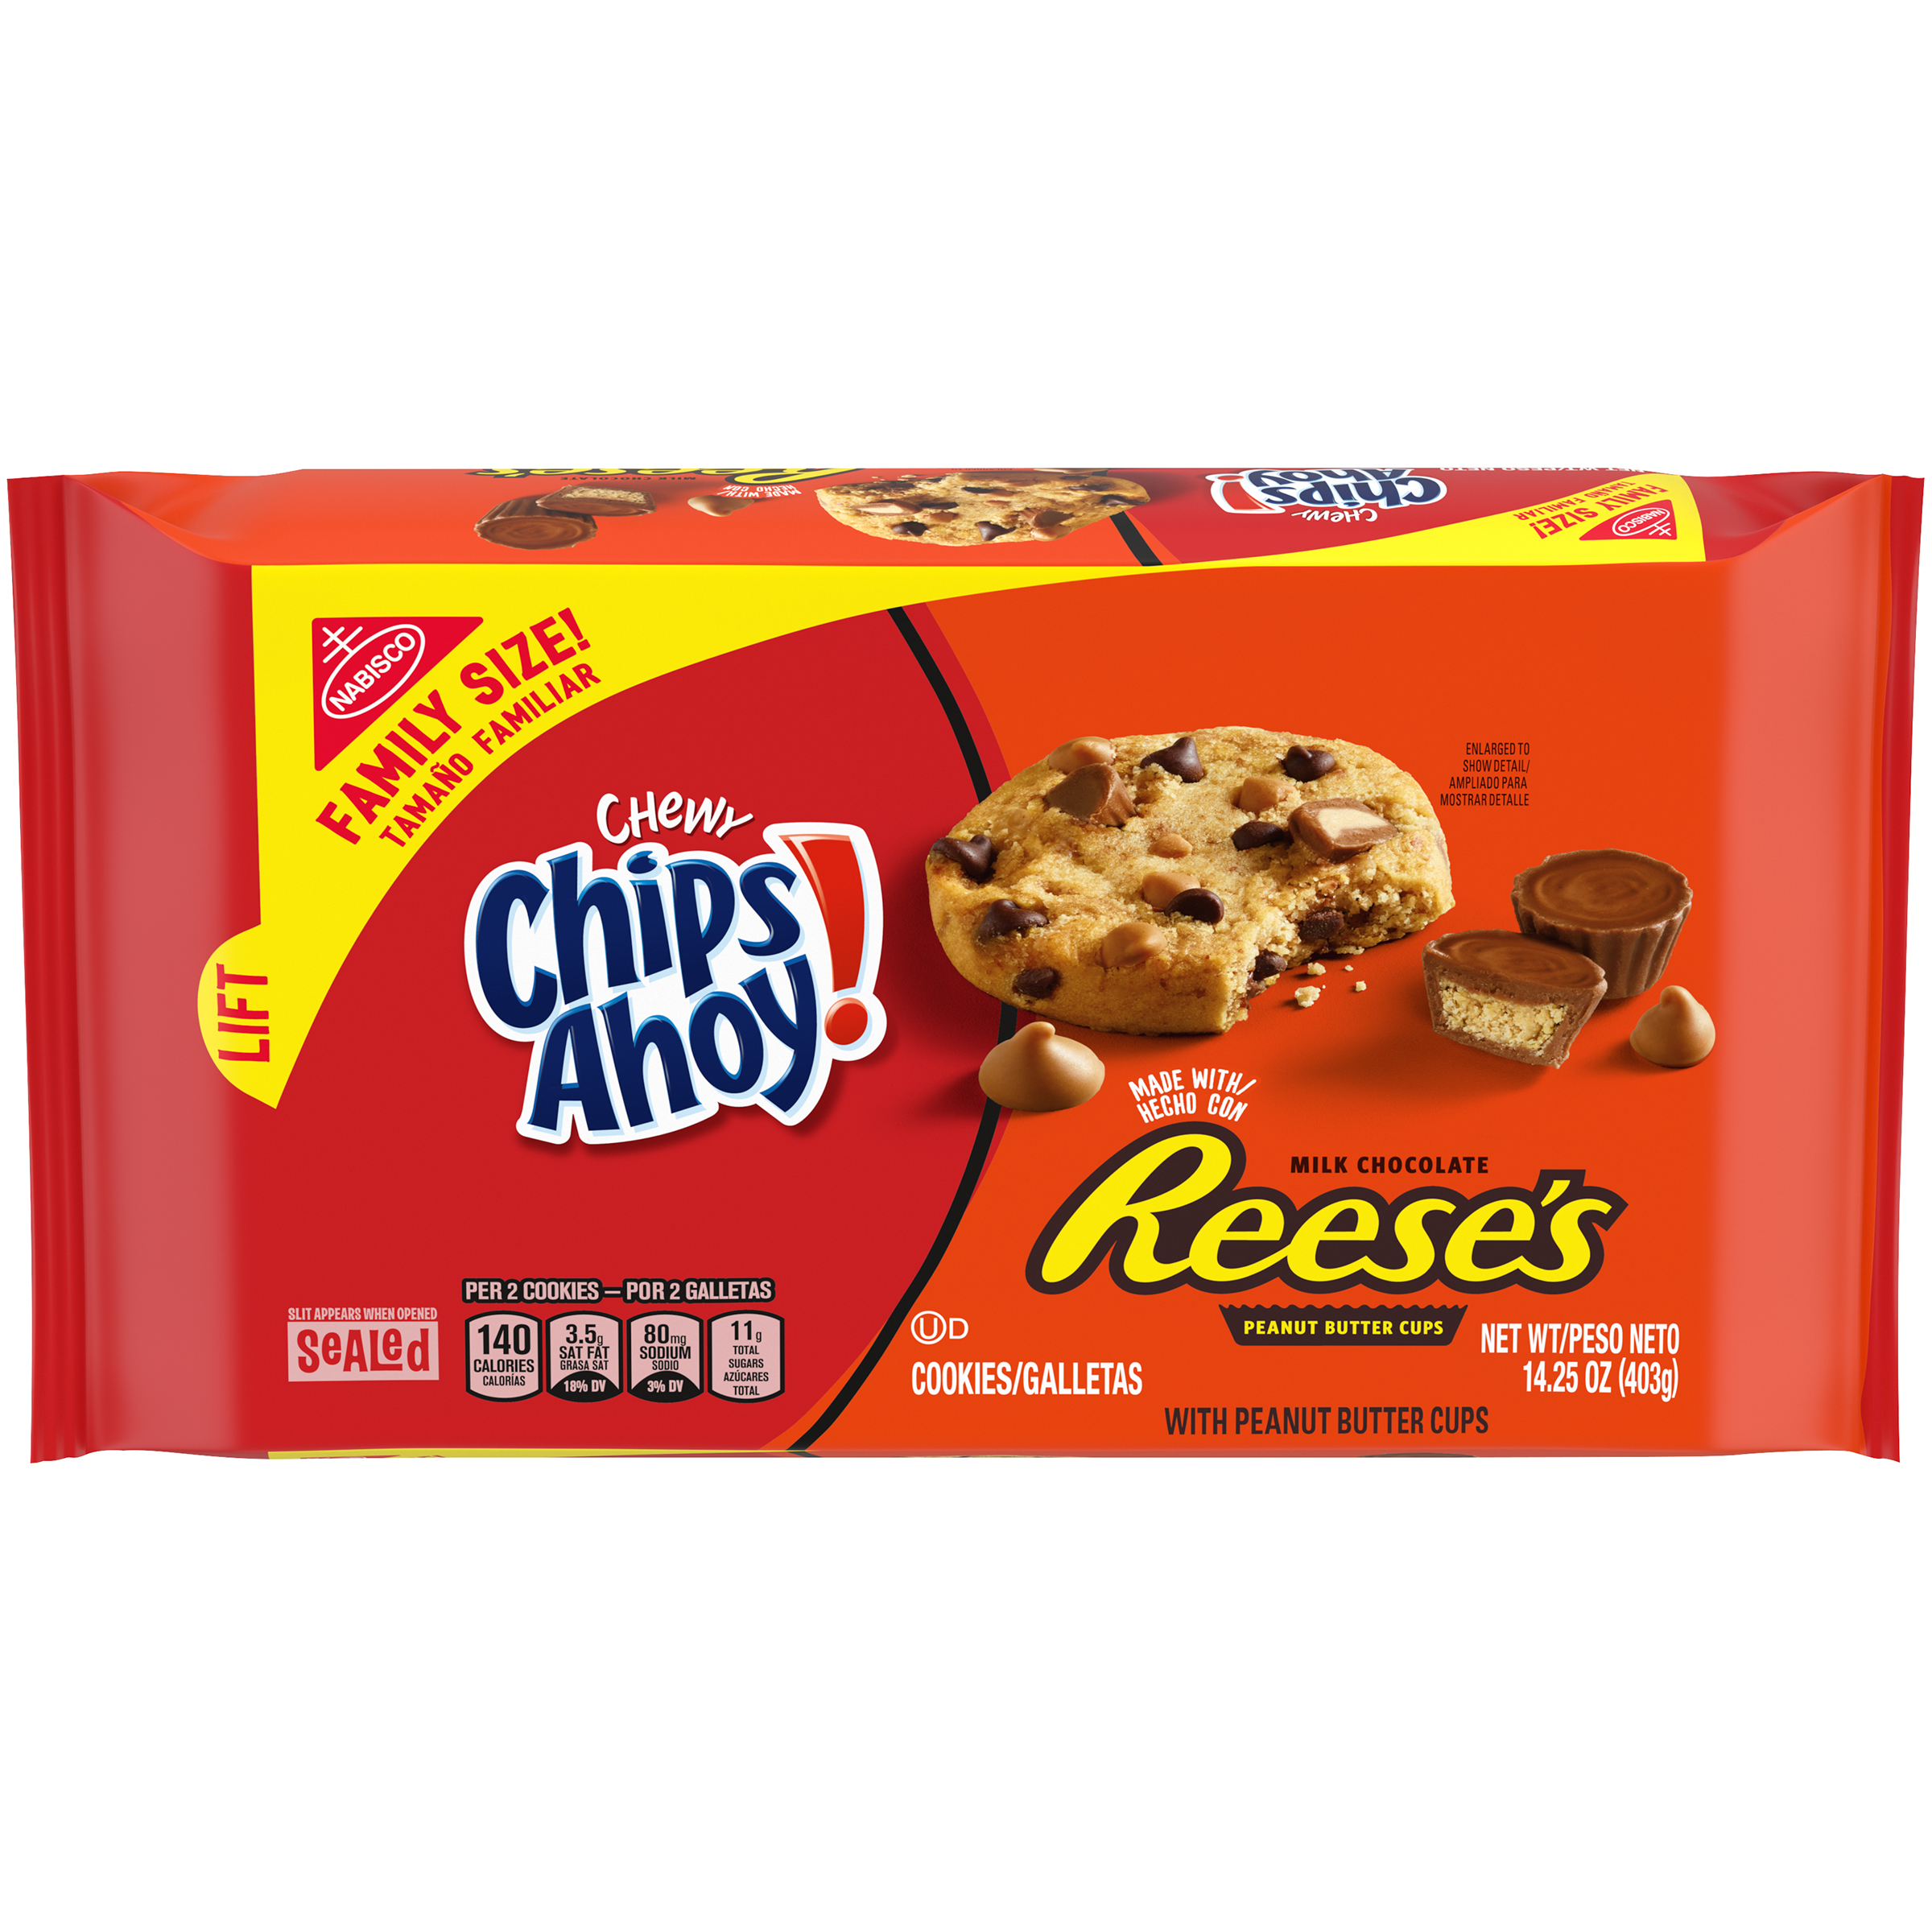 CHIPS AHOY! Chewy Chewy Cookies 14.25 oz